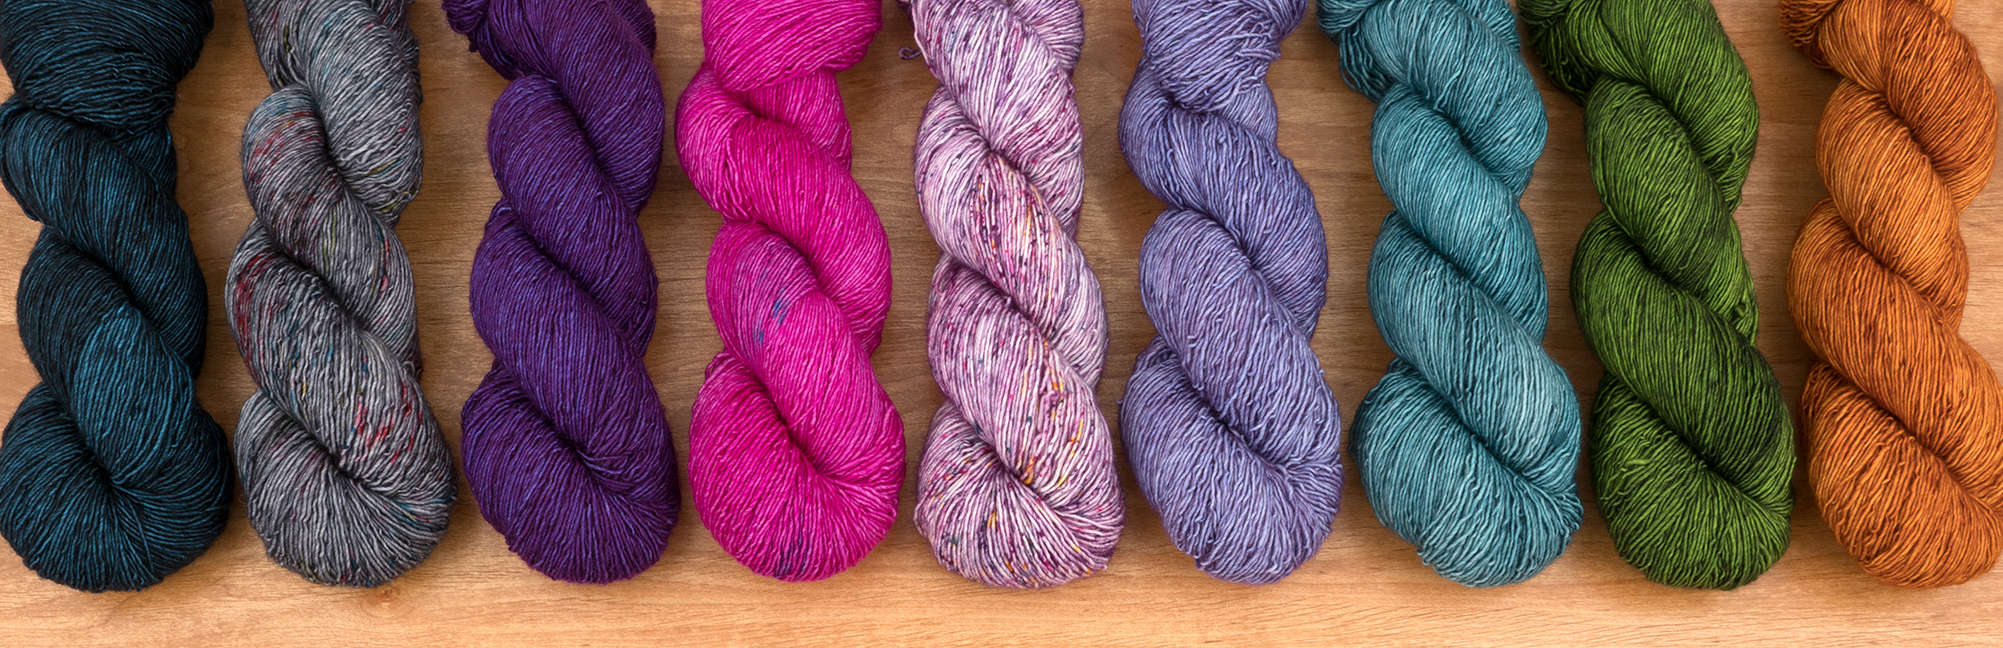 The Uncommon Thread Everyday Singles The Loopy Ewe